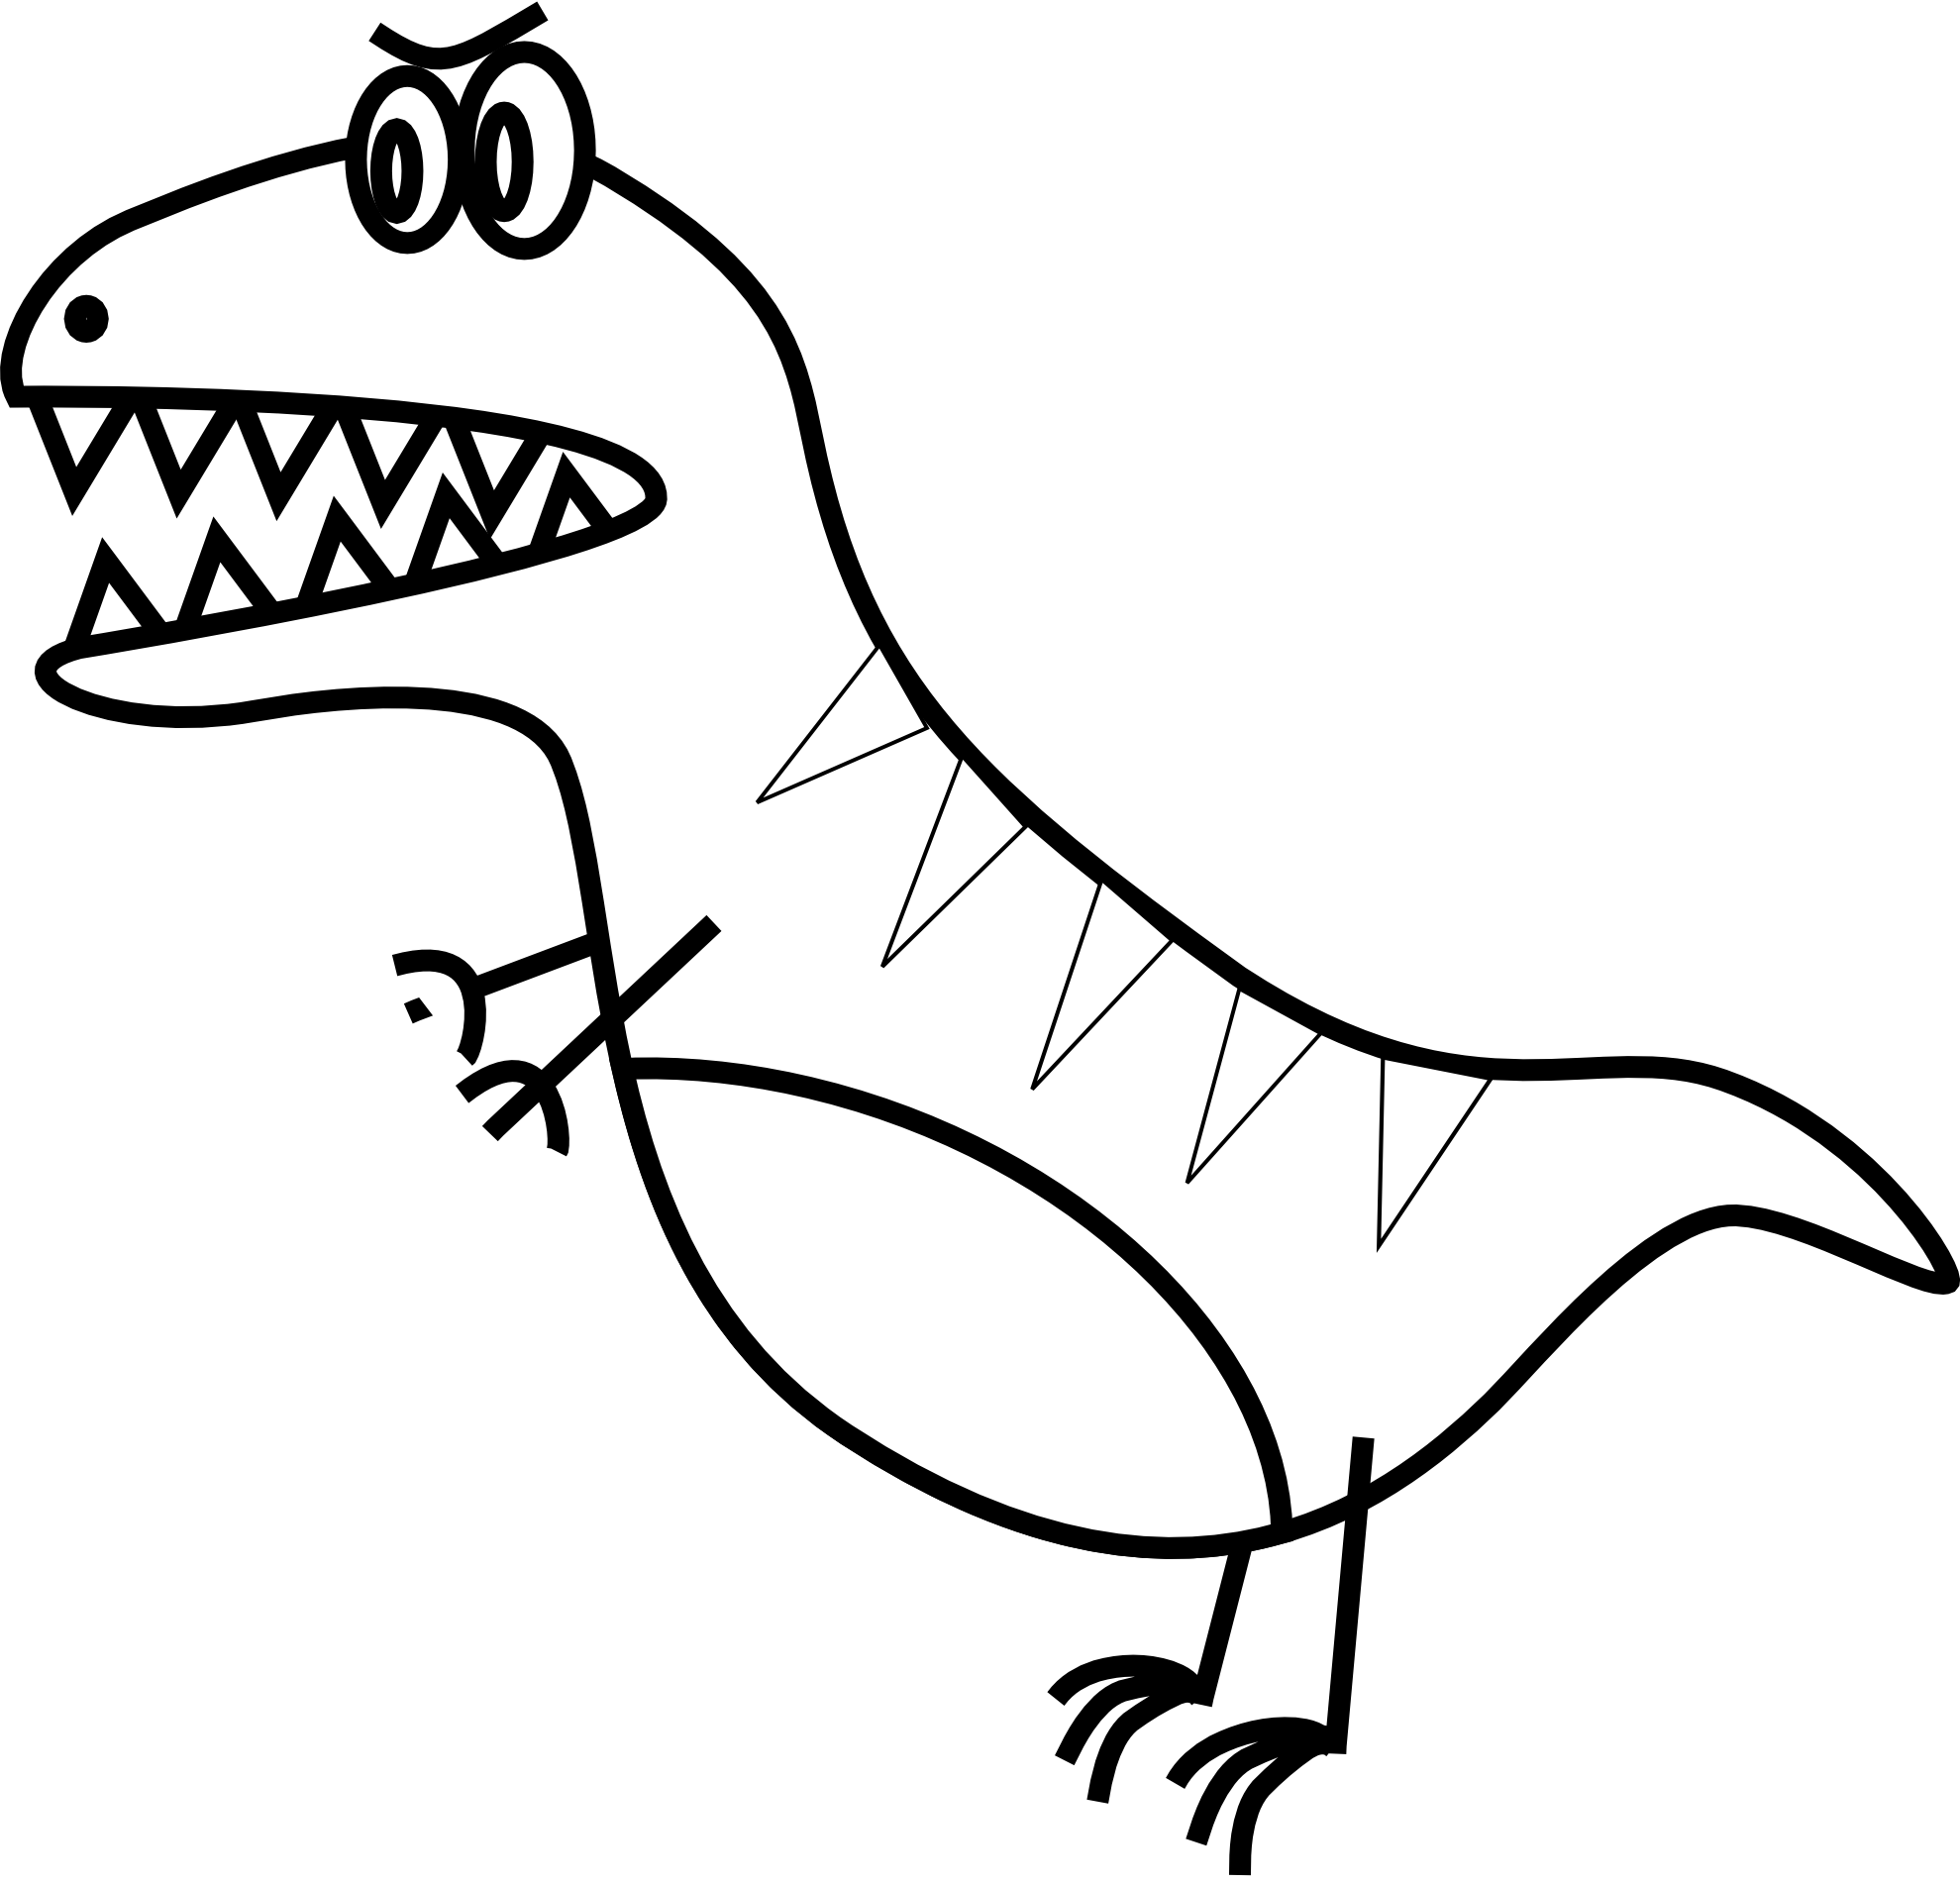 1979x1904 Drawn Dinosaur Simple